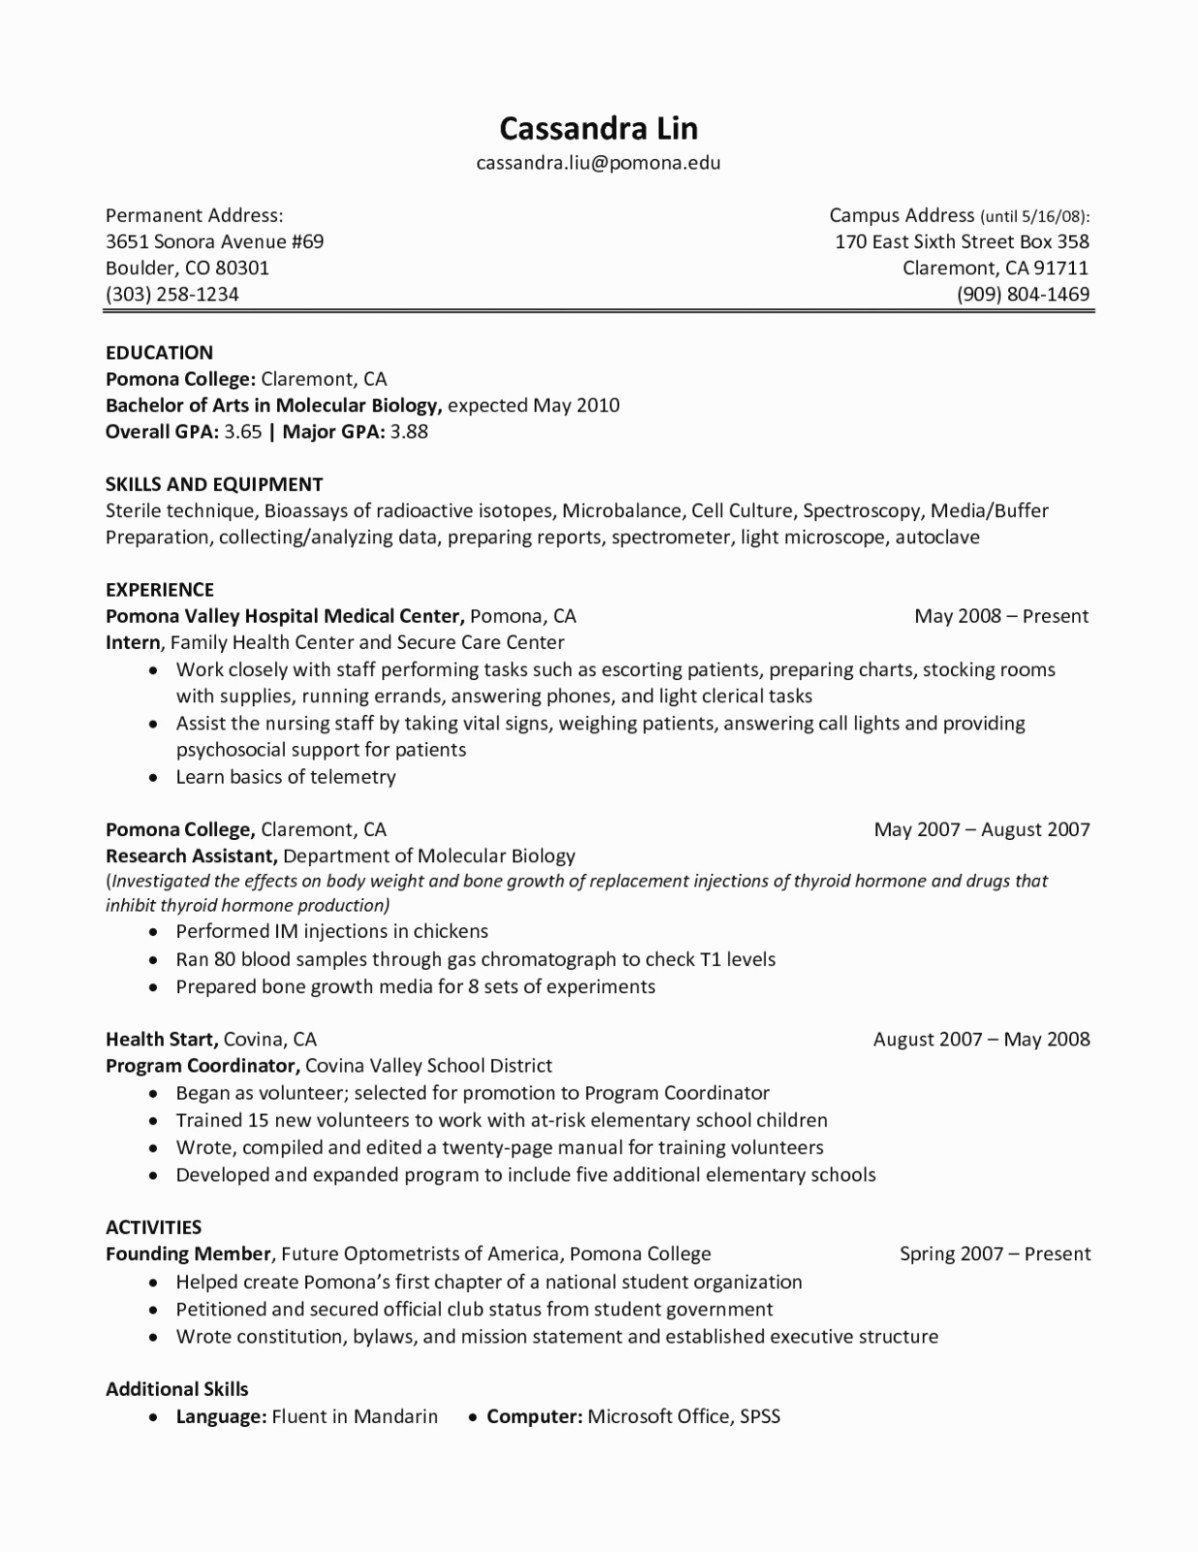 25 Biology Research Assistant Resume In 2020 Sample Mission